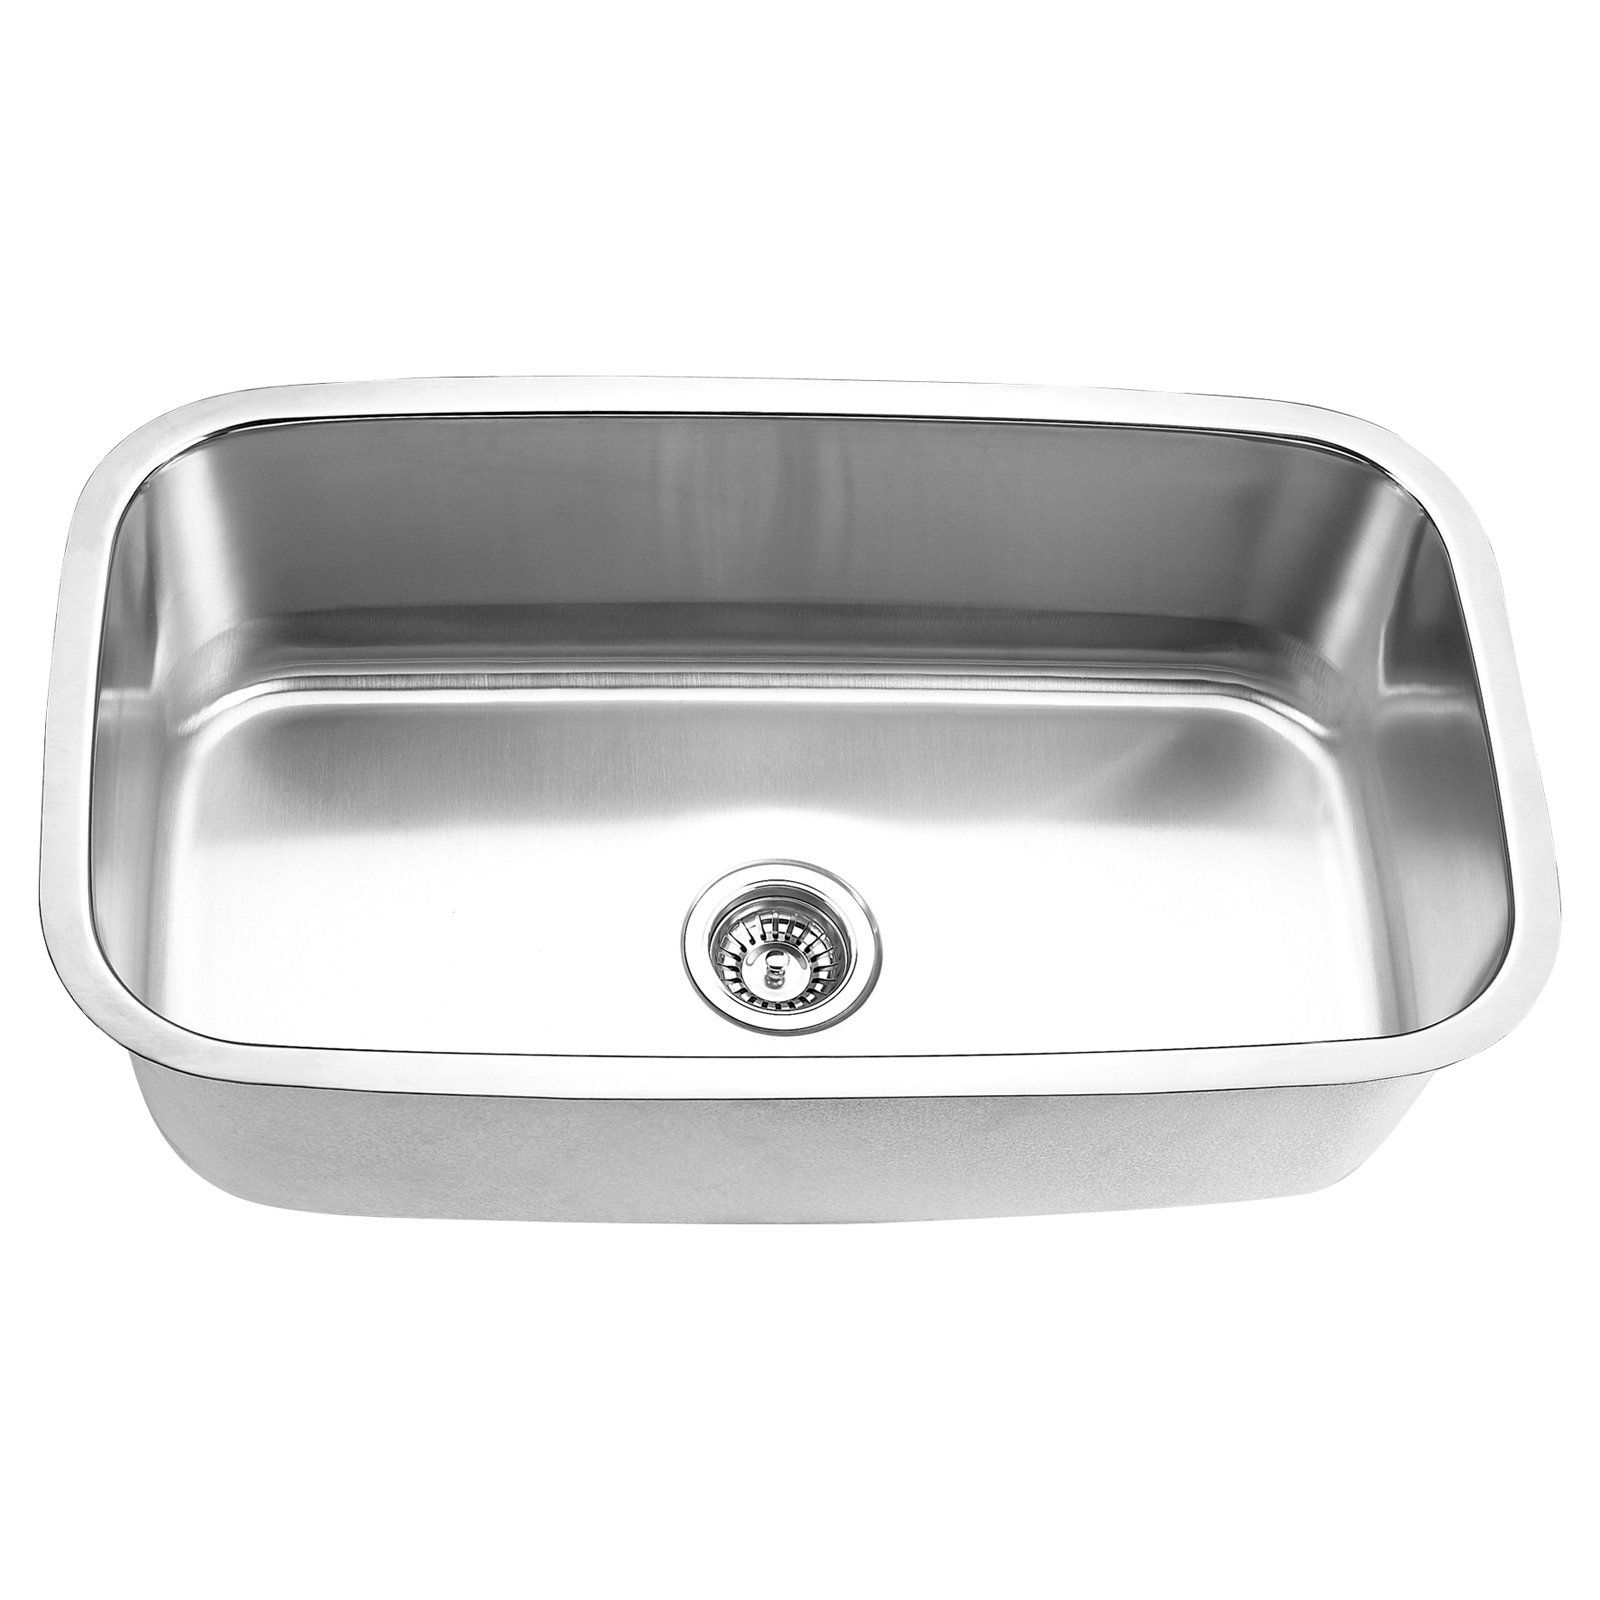 Yosemite Mag3118 Single Basin Undermount Kitchen Sink Single